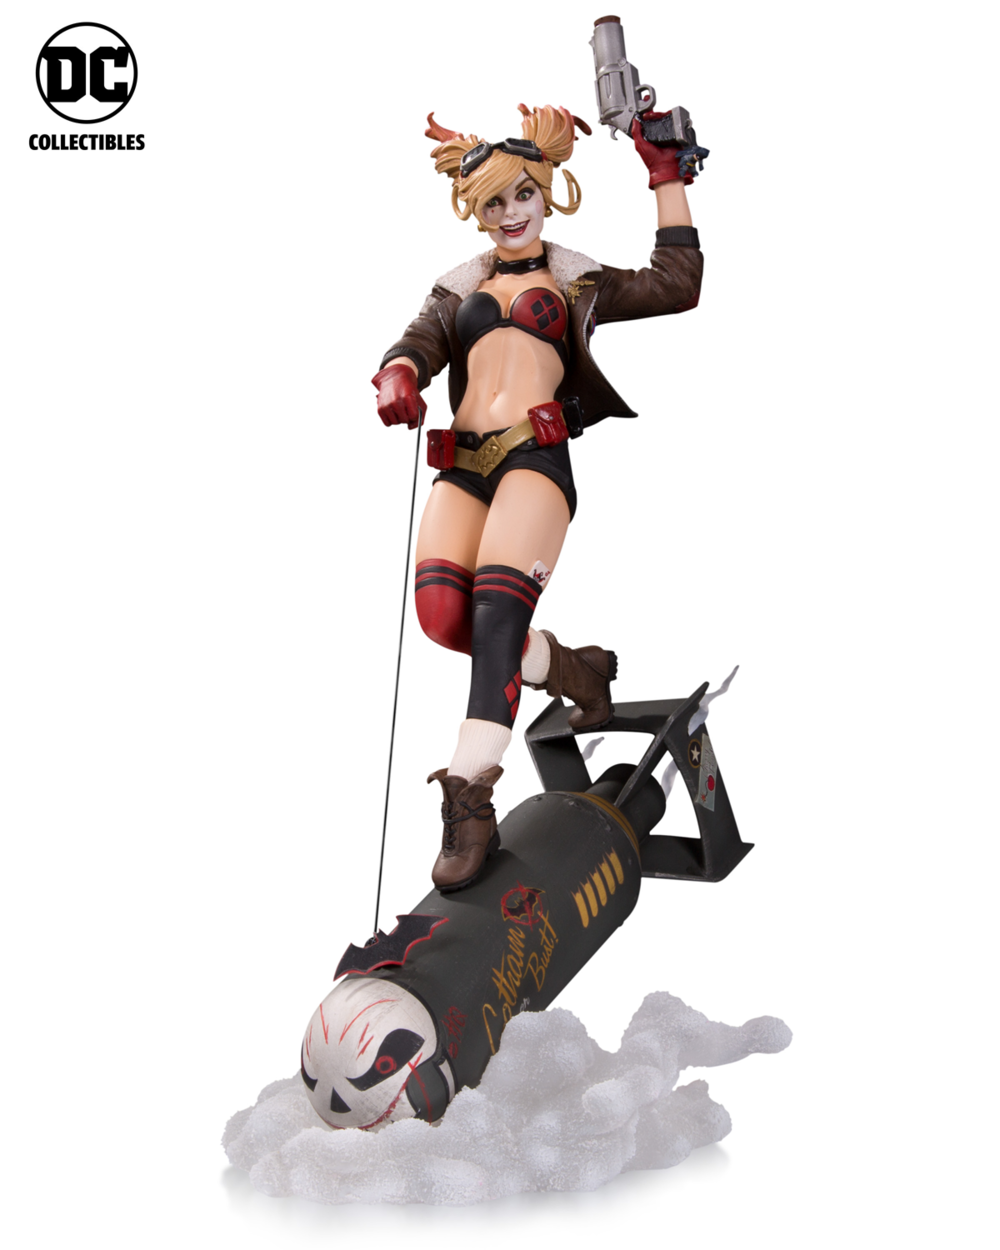 dc-reveals-their-cool-new-dc-bombshells-action-figure-and-statuette-collection3